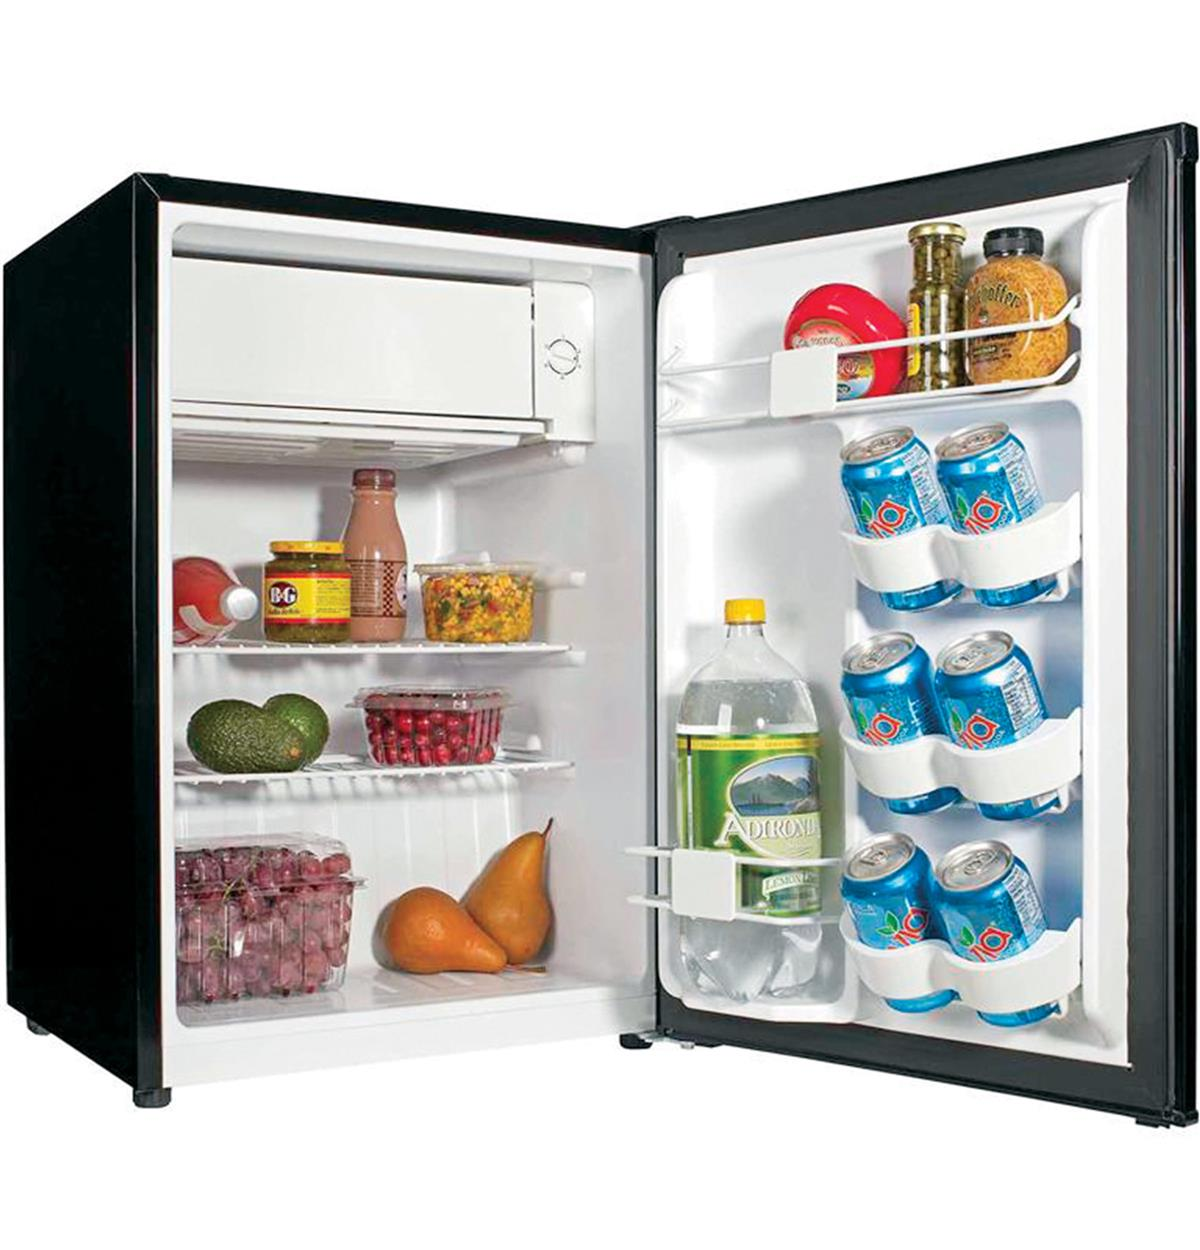 Hc27sw20rb 2 7 Cu Ft Compact Refrigerator Haier